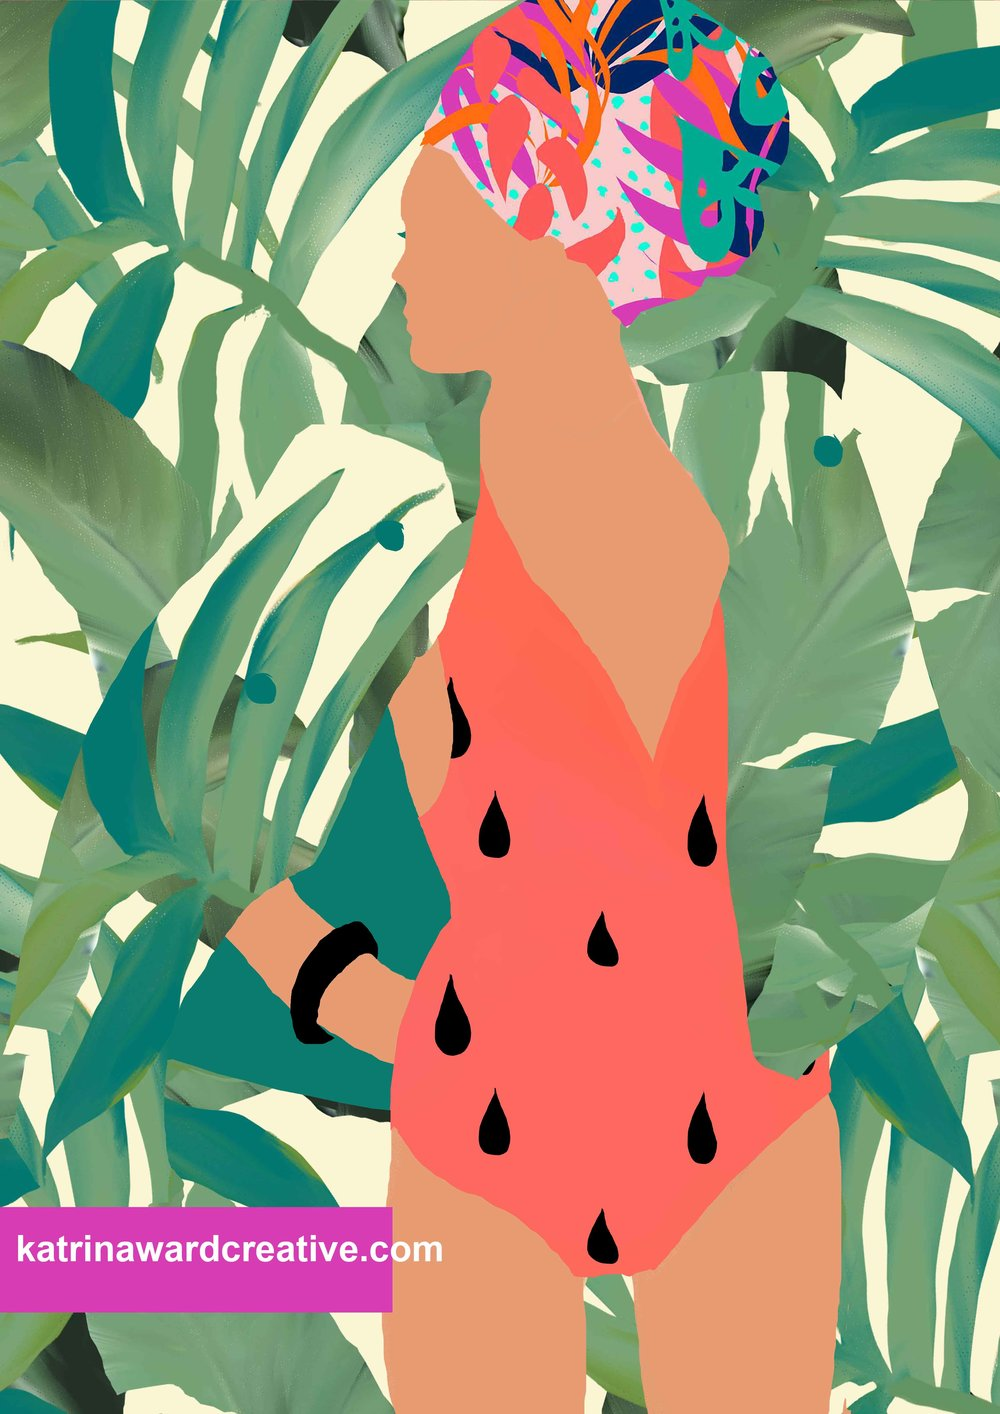 My watermelon rain print is still one of my favourites because of the slight ombre in the pink tones. The palm print is back with a neon jungle textile pattern that hasn't been published before. I love how her coat is the same as the jungle behind her and that it looks like she has her left hand in the pocket of her coat.